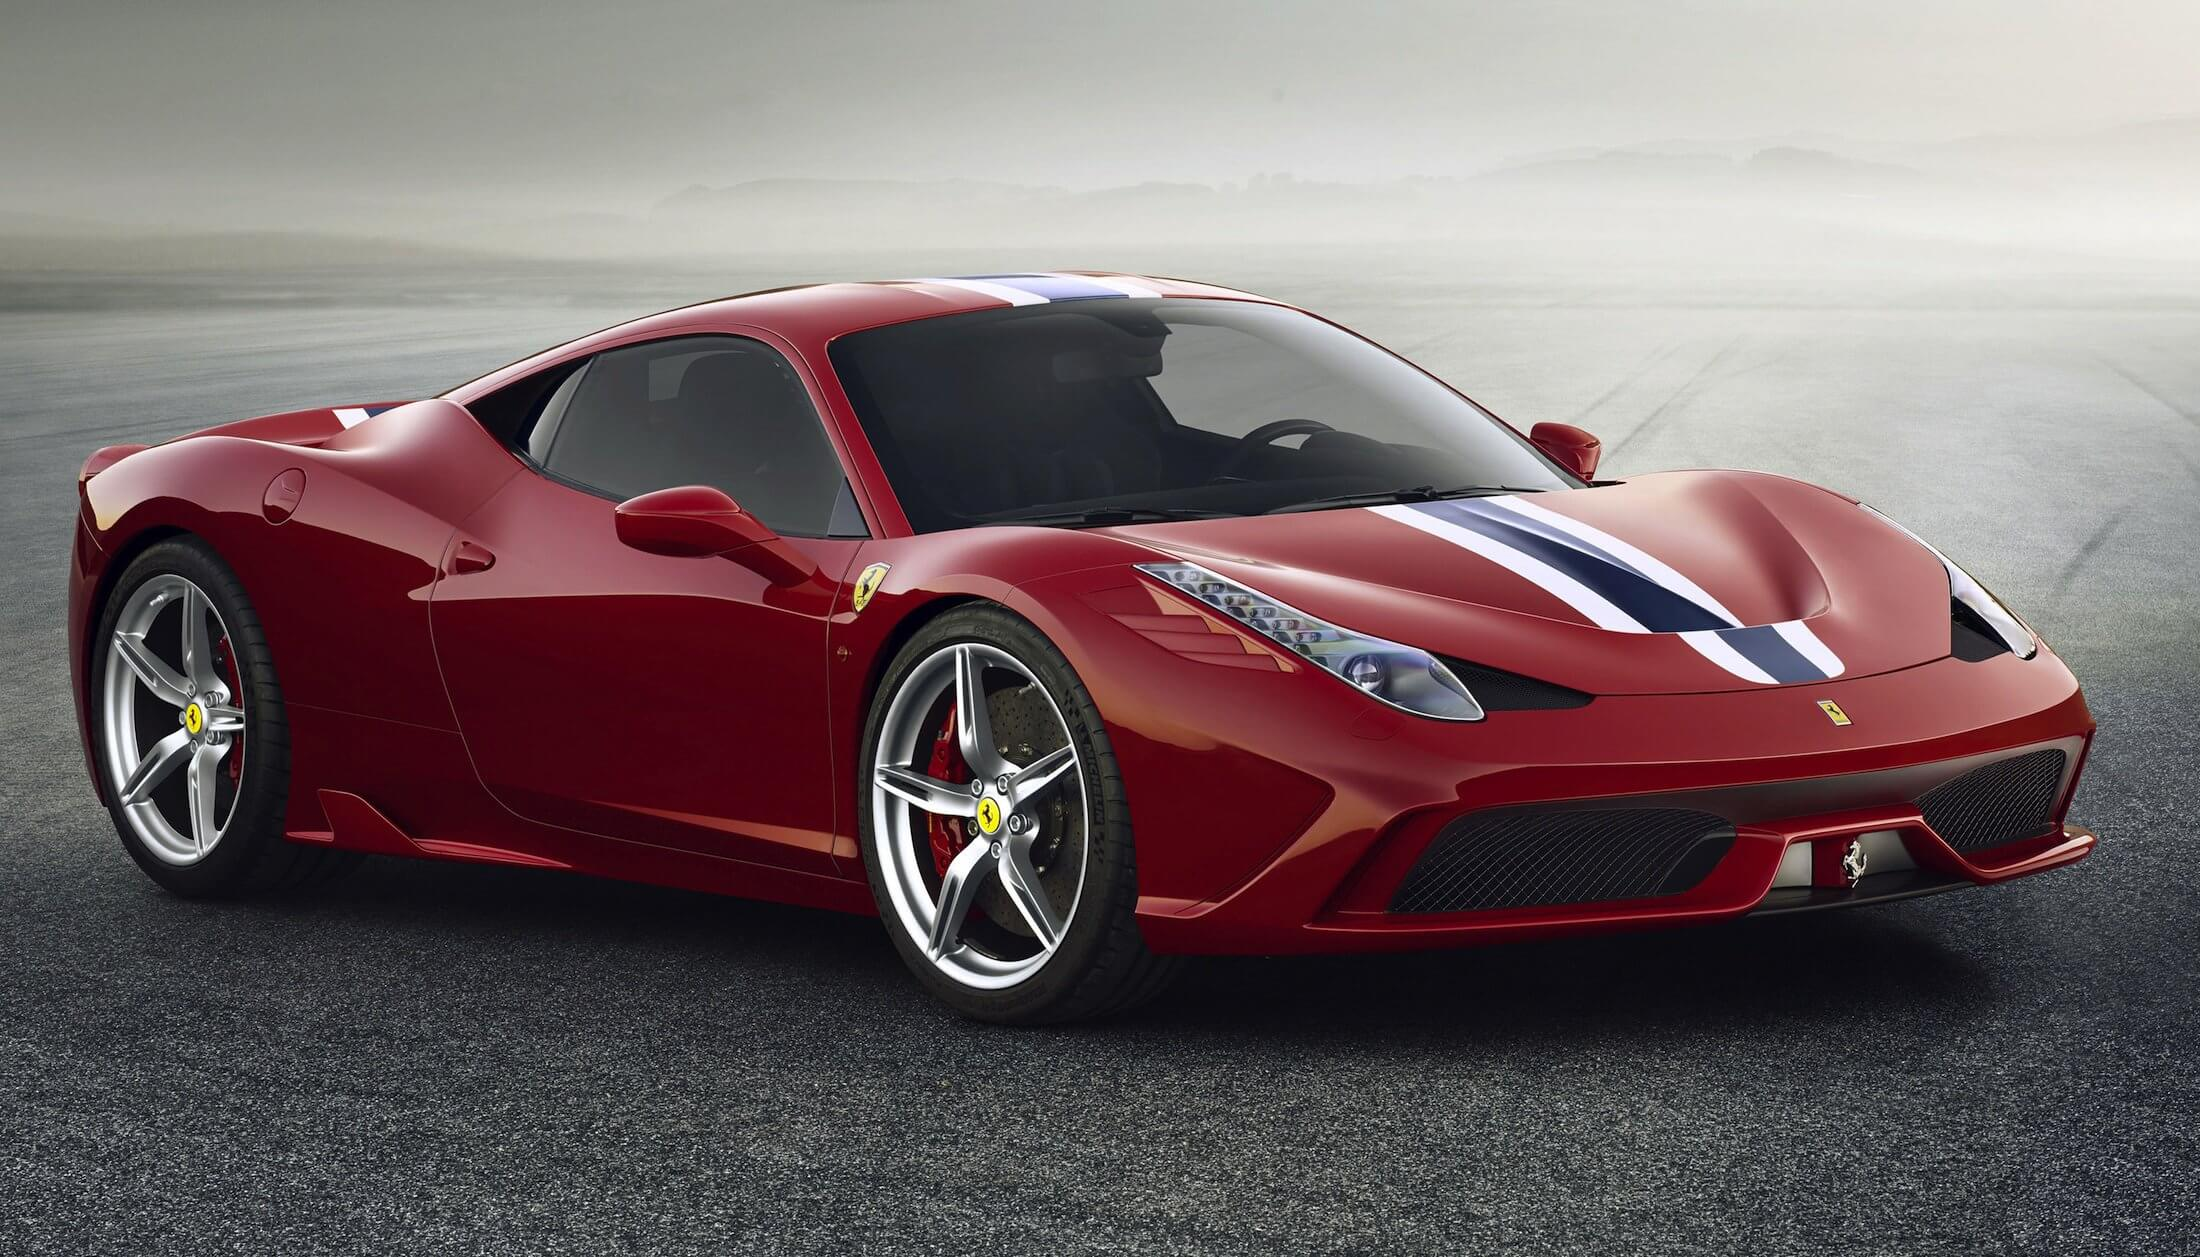 #10 Ferrari 458 Speciale | Super Expensive Rental Cars | Image Source: caradvice.com.au